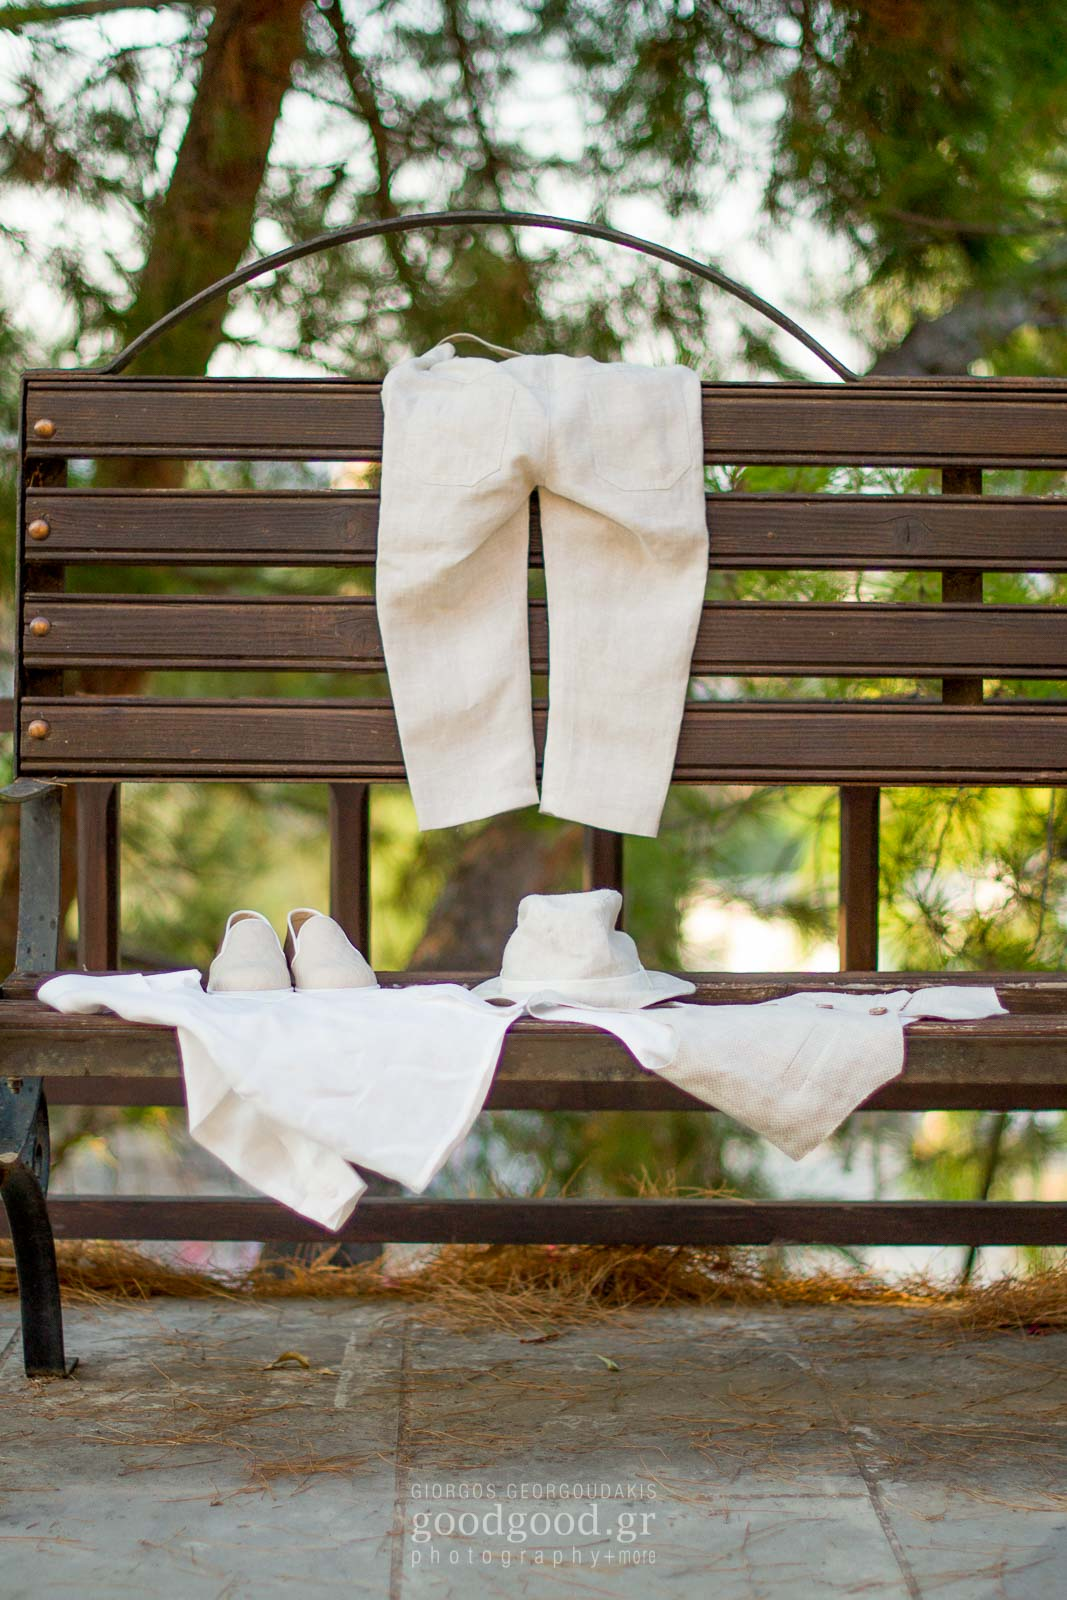 Baptism clothes hanging on a bench